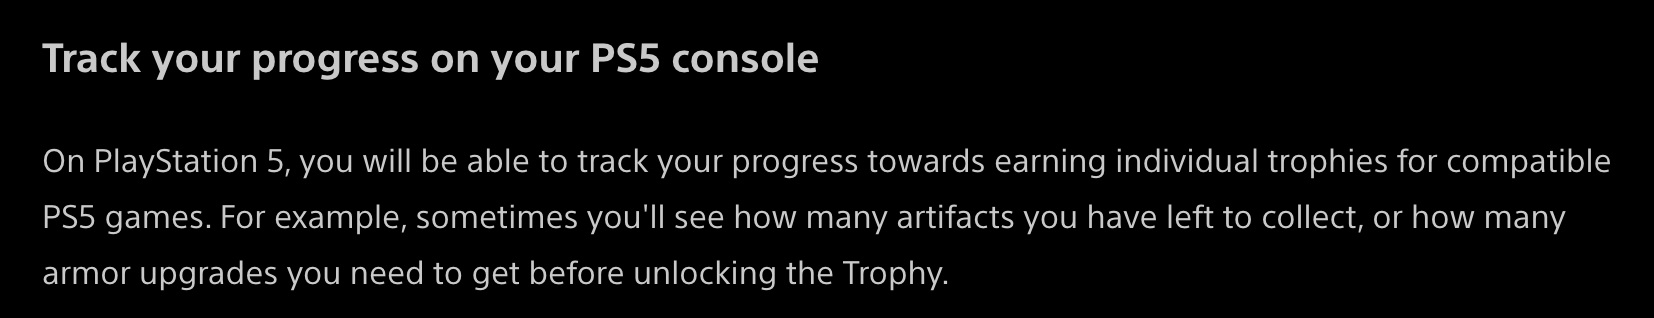 ps5 trophies progress tracking